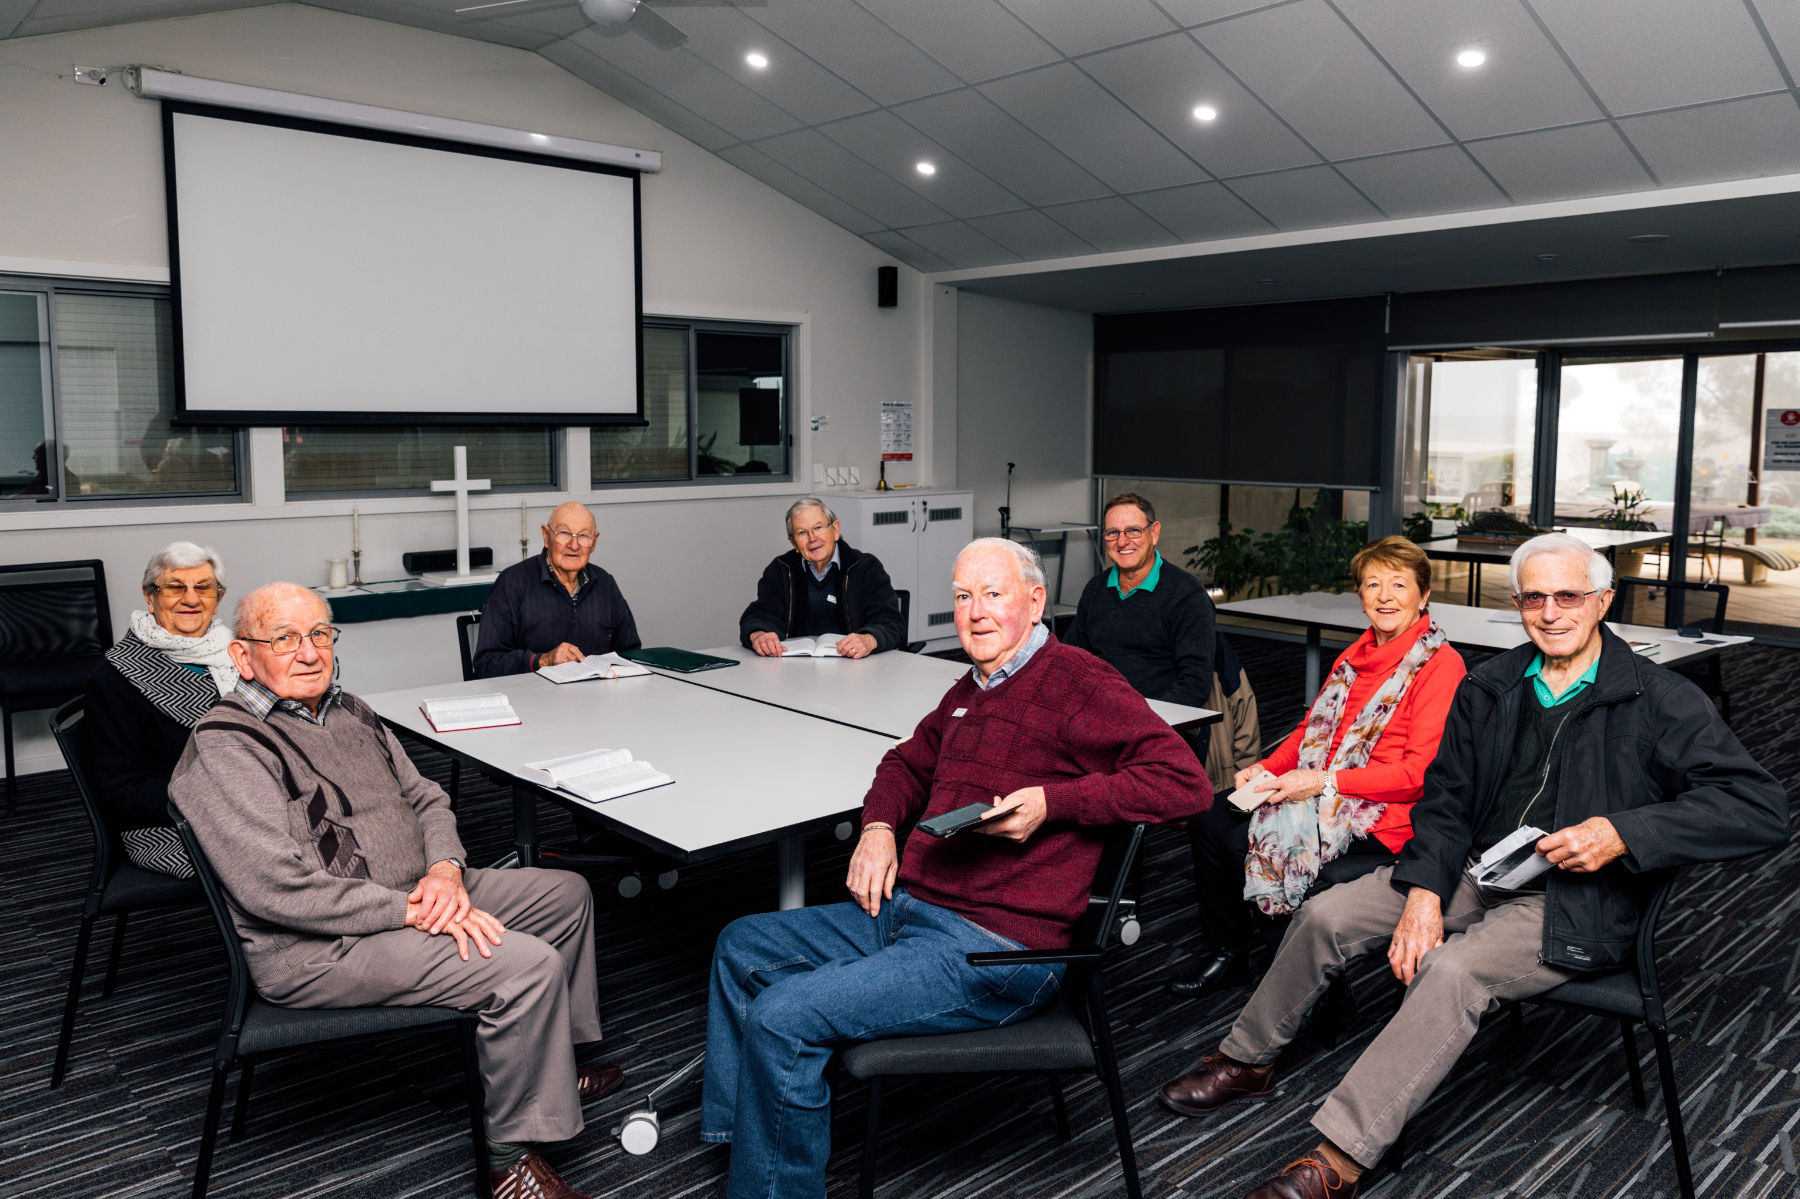 Residents having a meeting around table